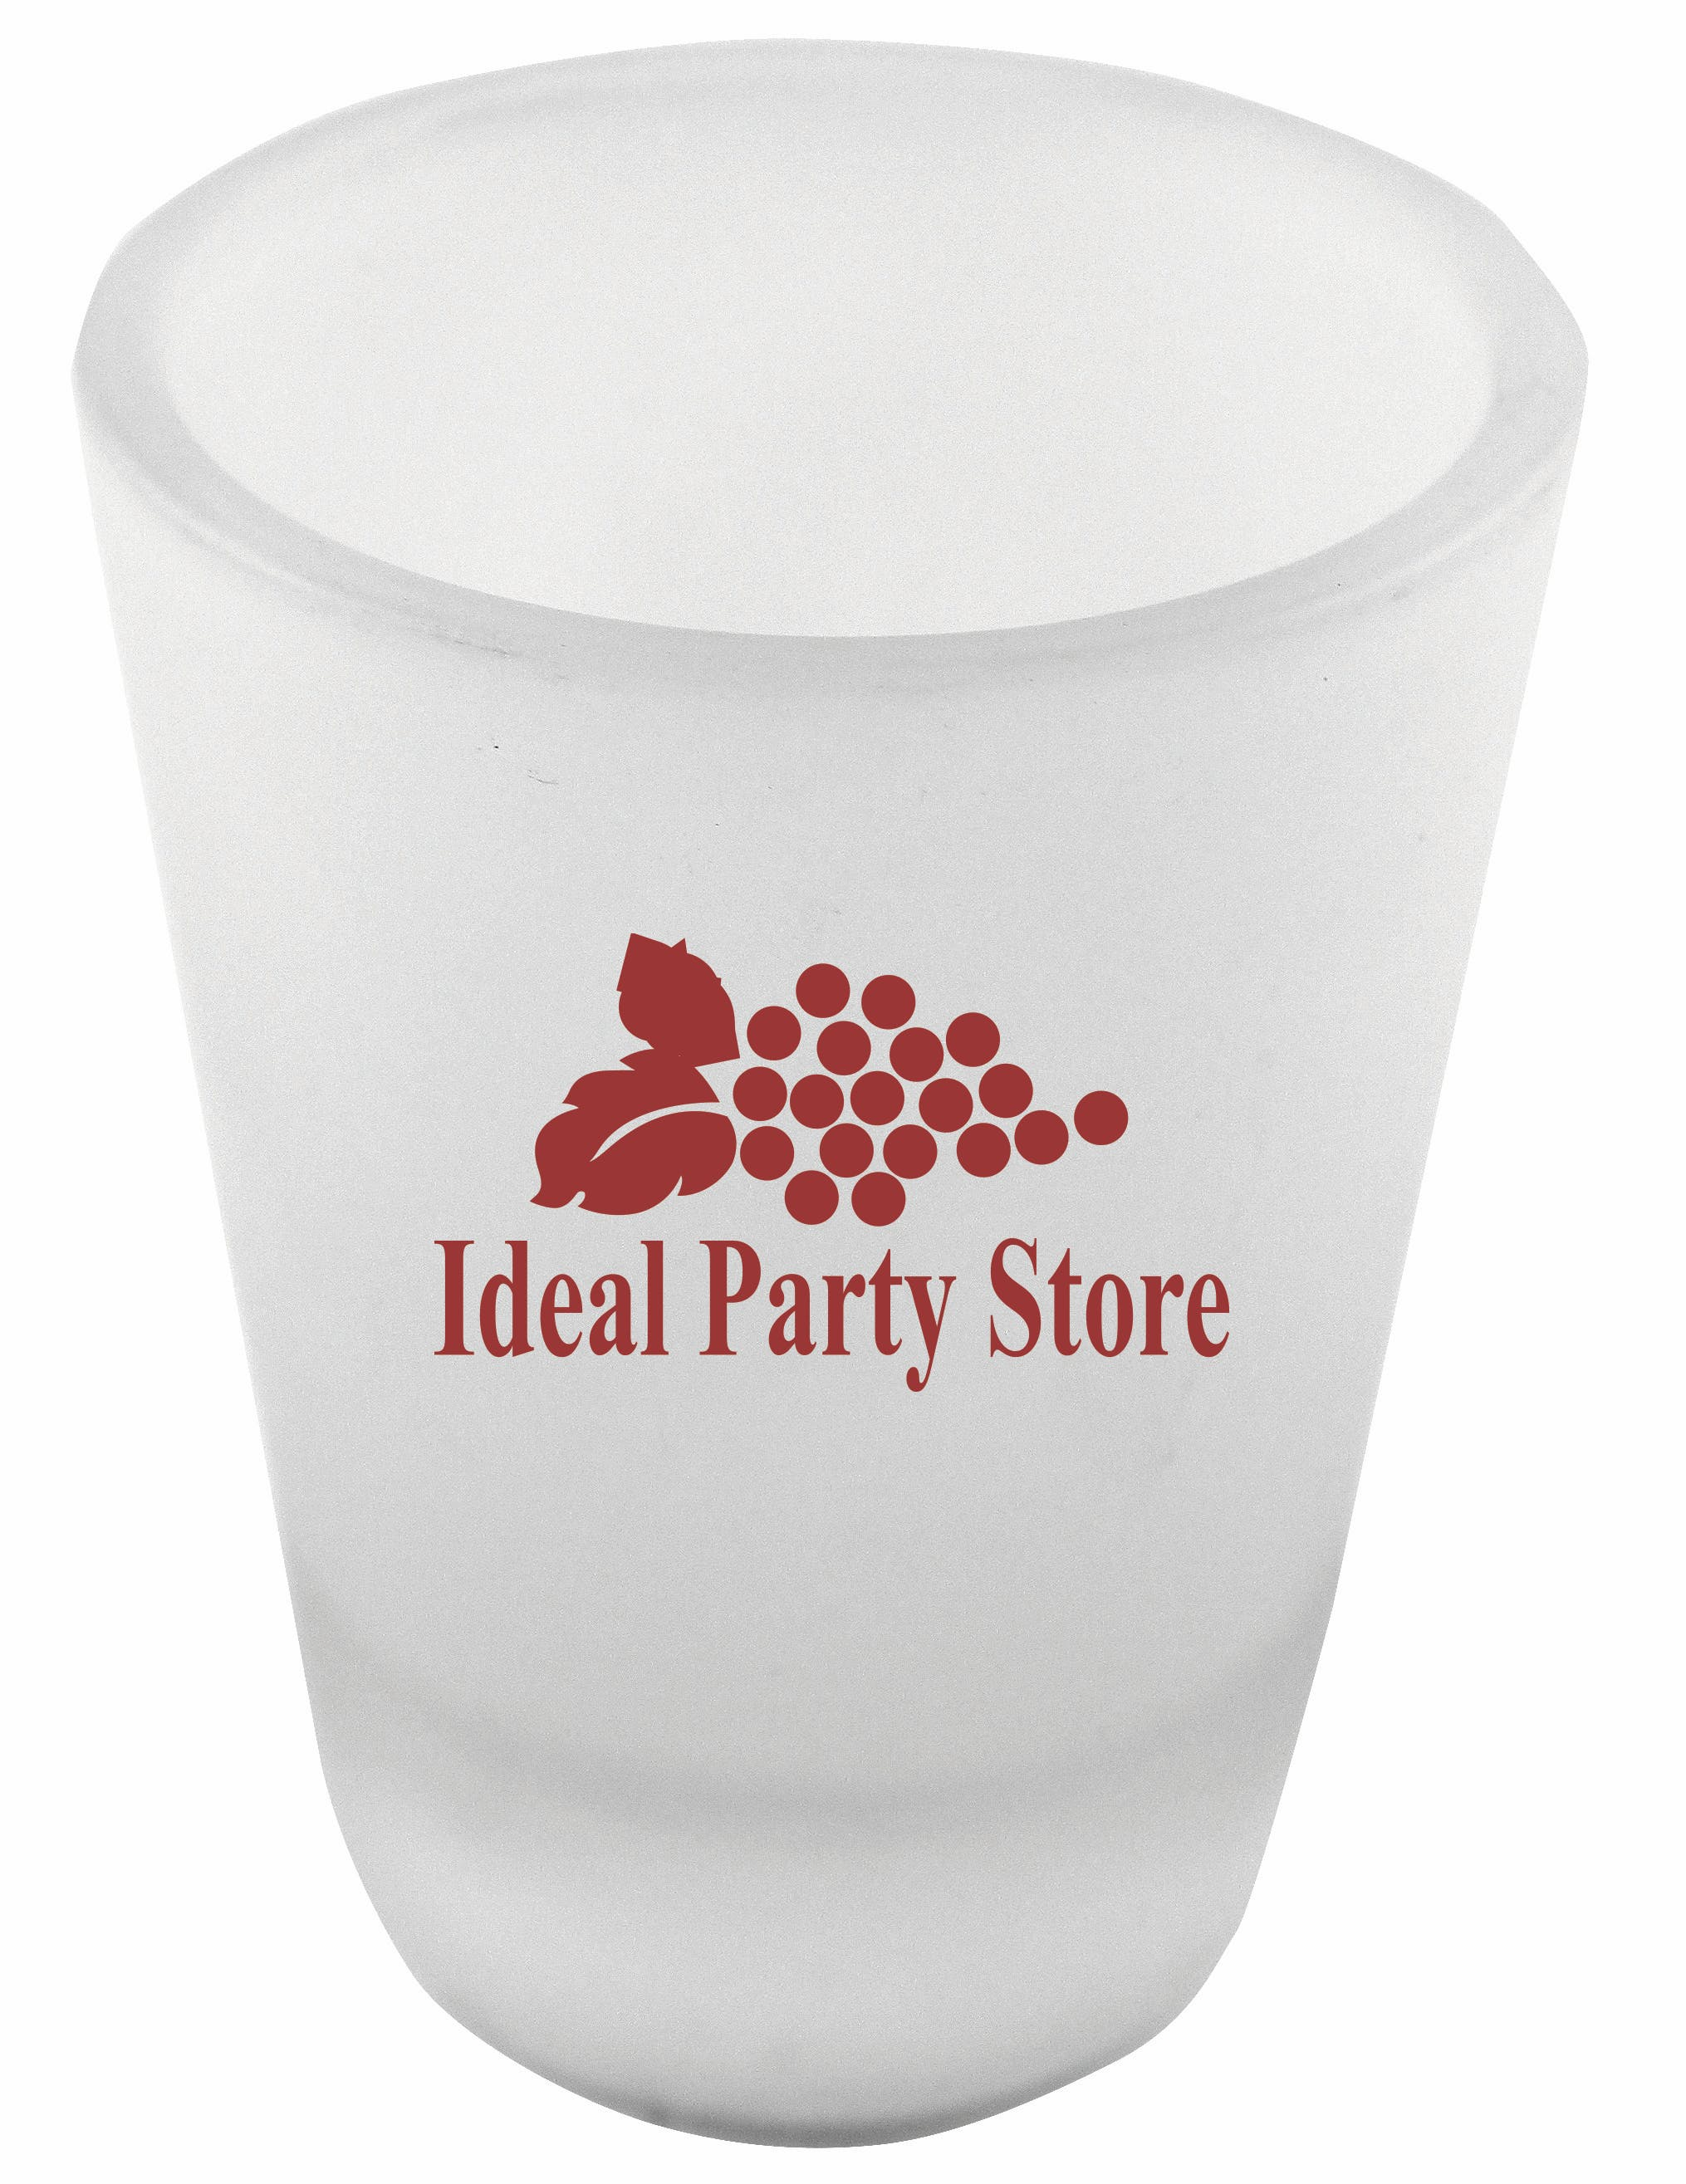 1.5 oz. Frosted Shot Glass Shot glass sold by Prestige Glassware